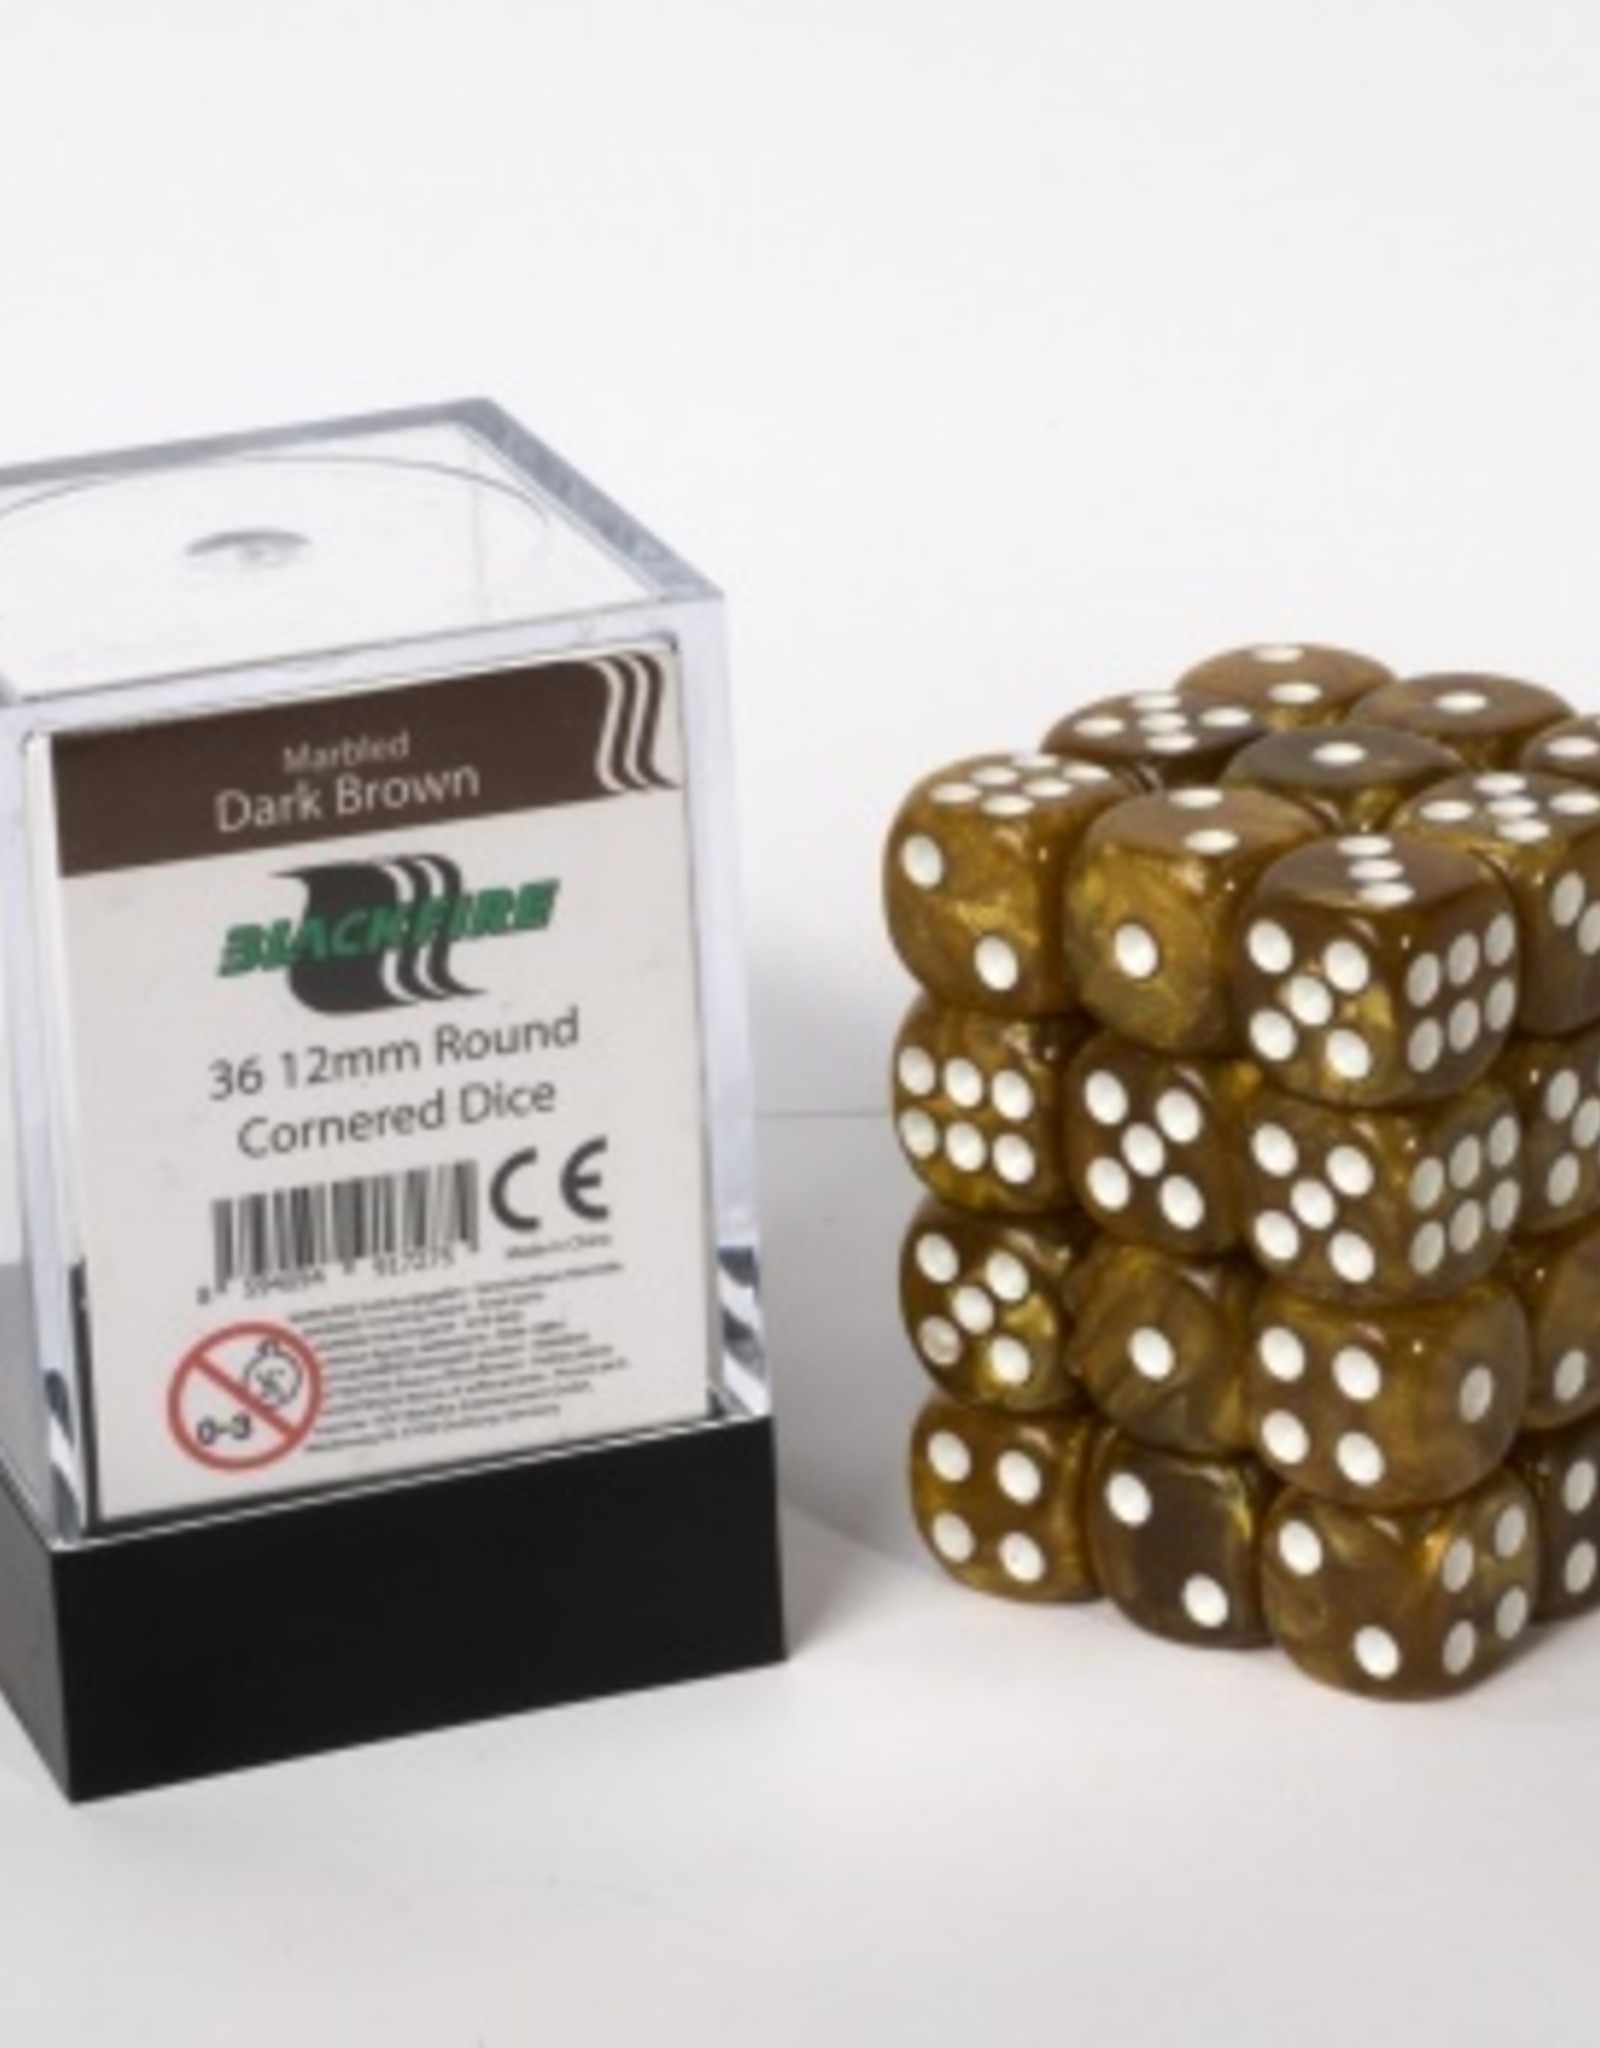 ADC Blackfire Dice cube 12mm - Marbled Dark Brown (36)